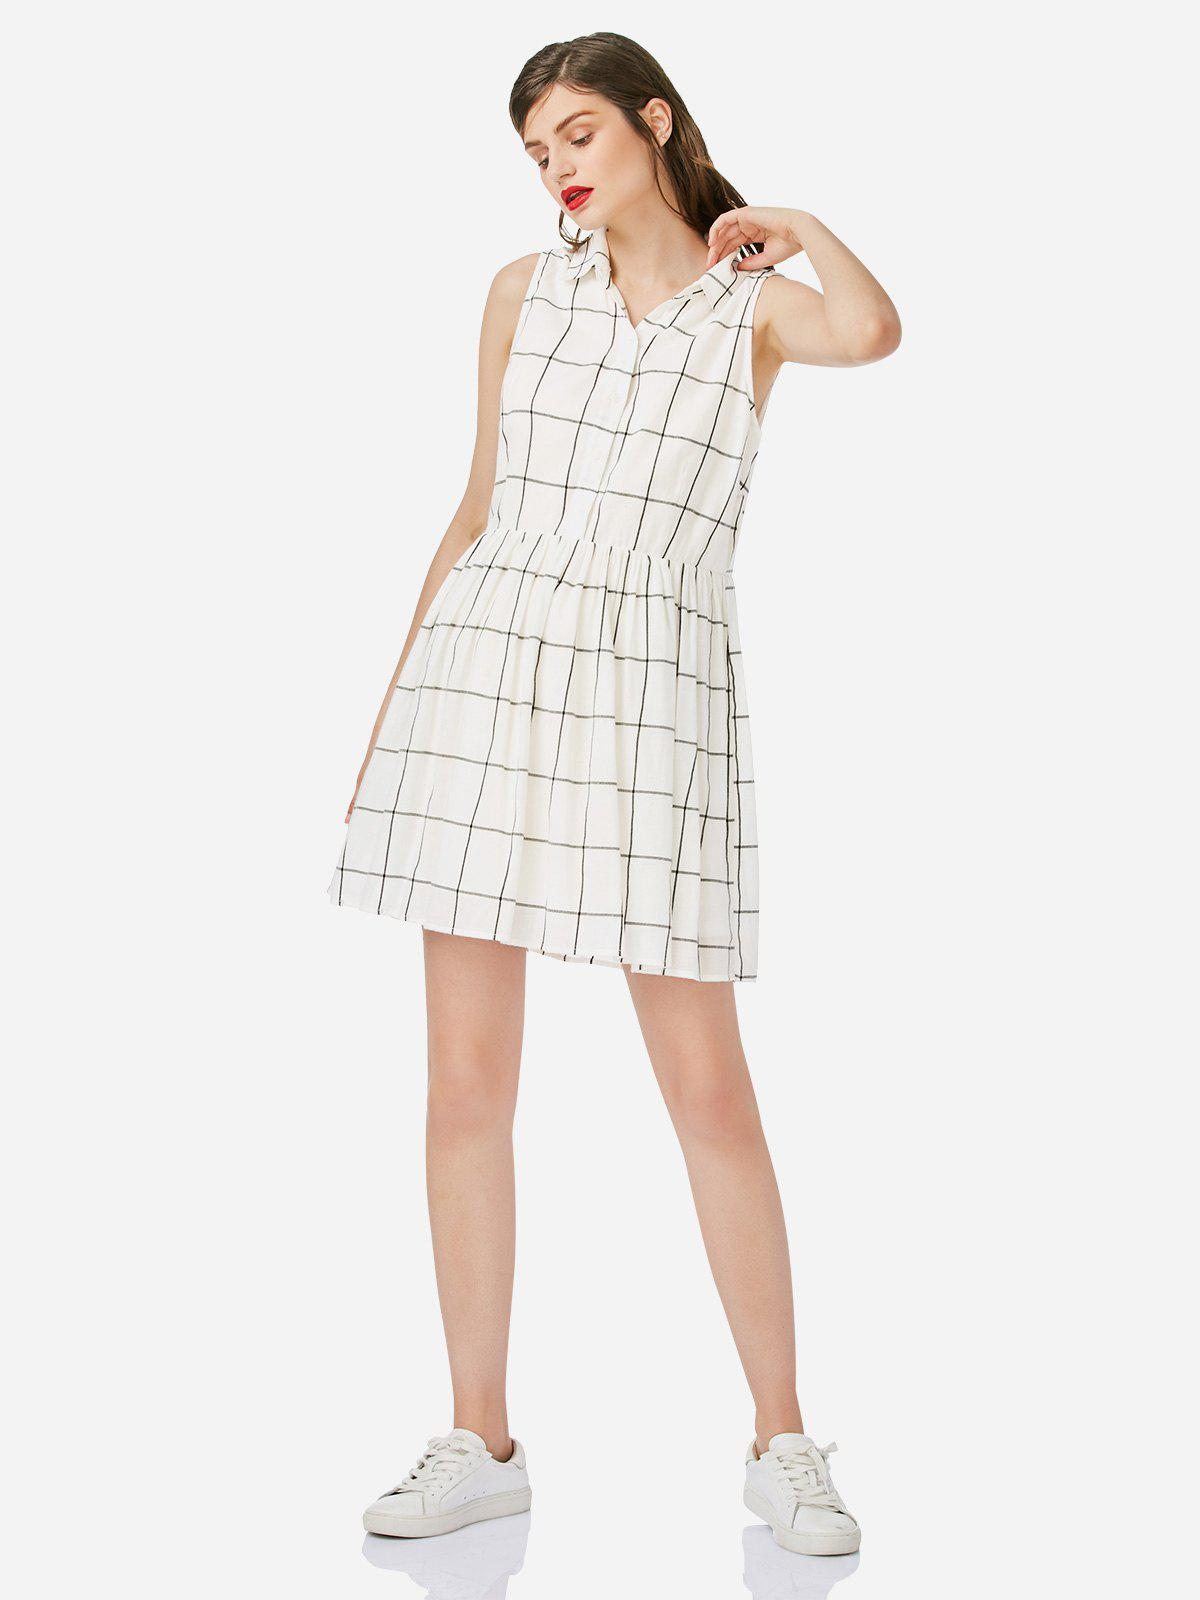 Fancy ZAN.STYLE Sleeveless Shirt Dress